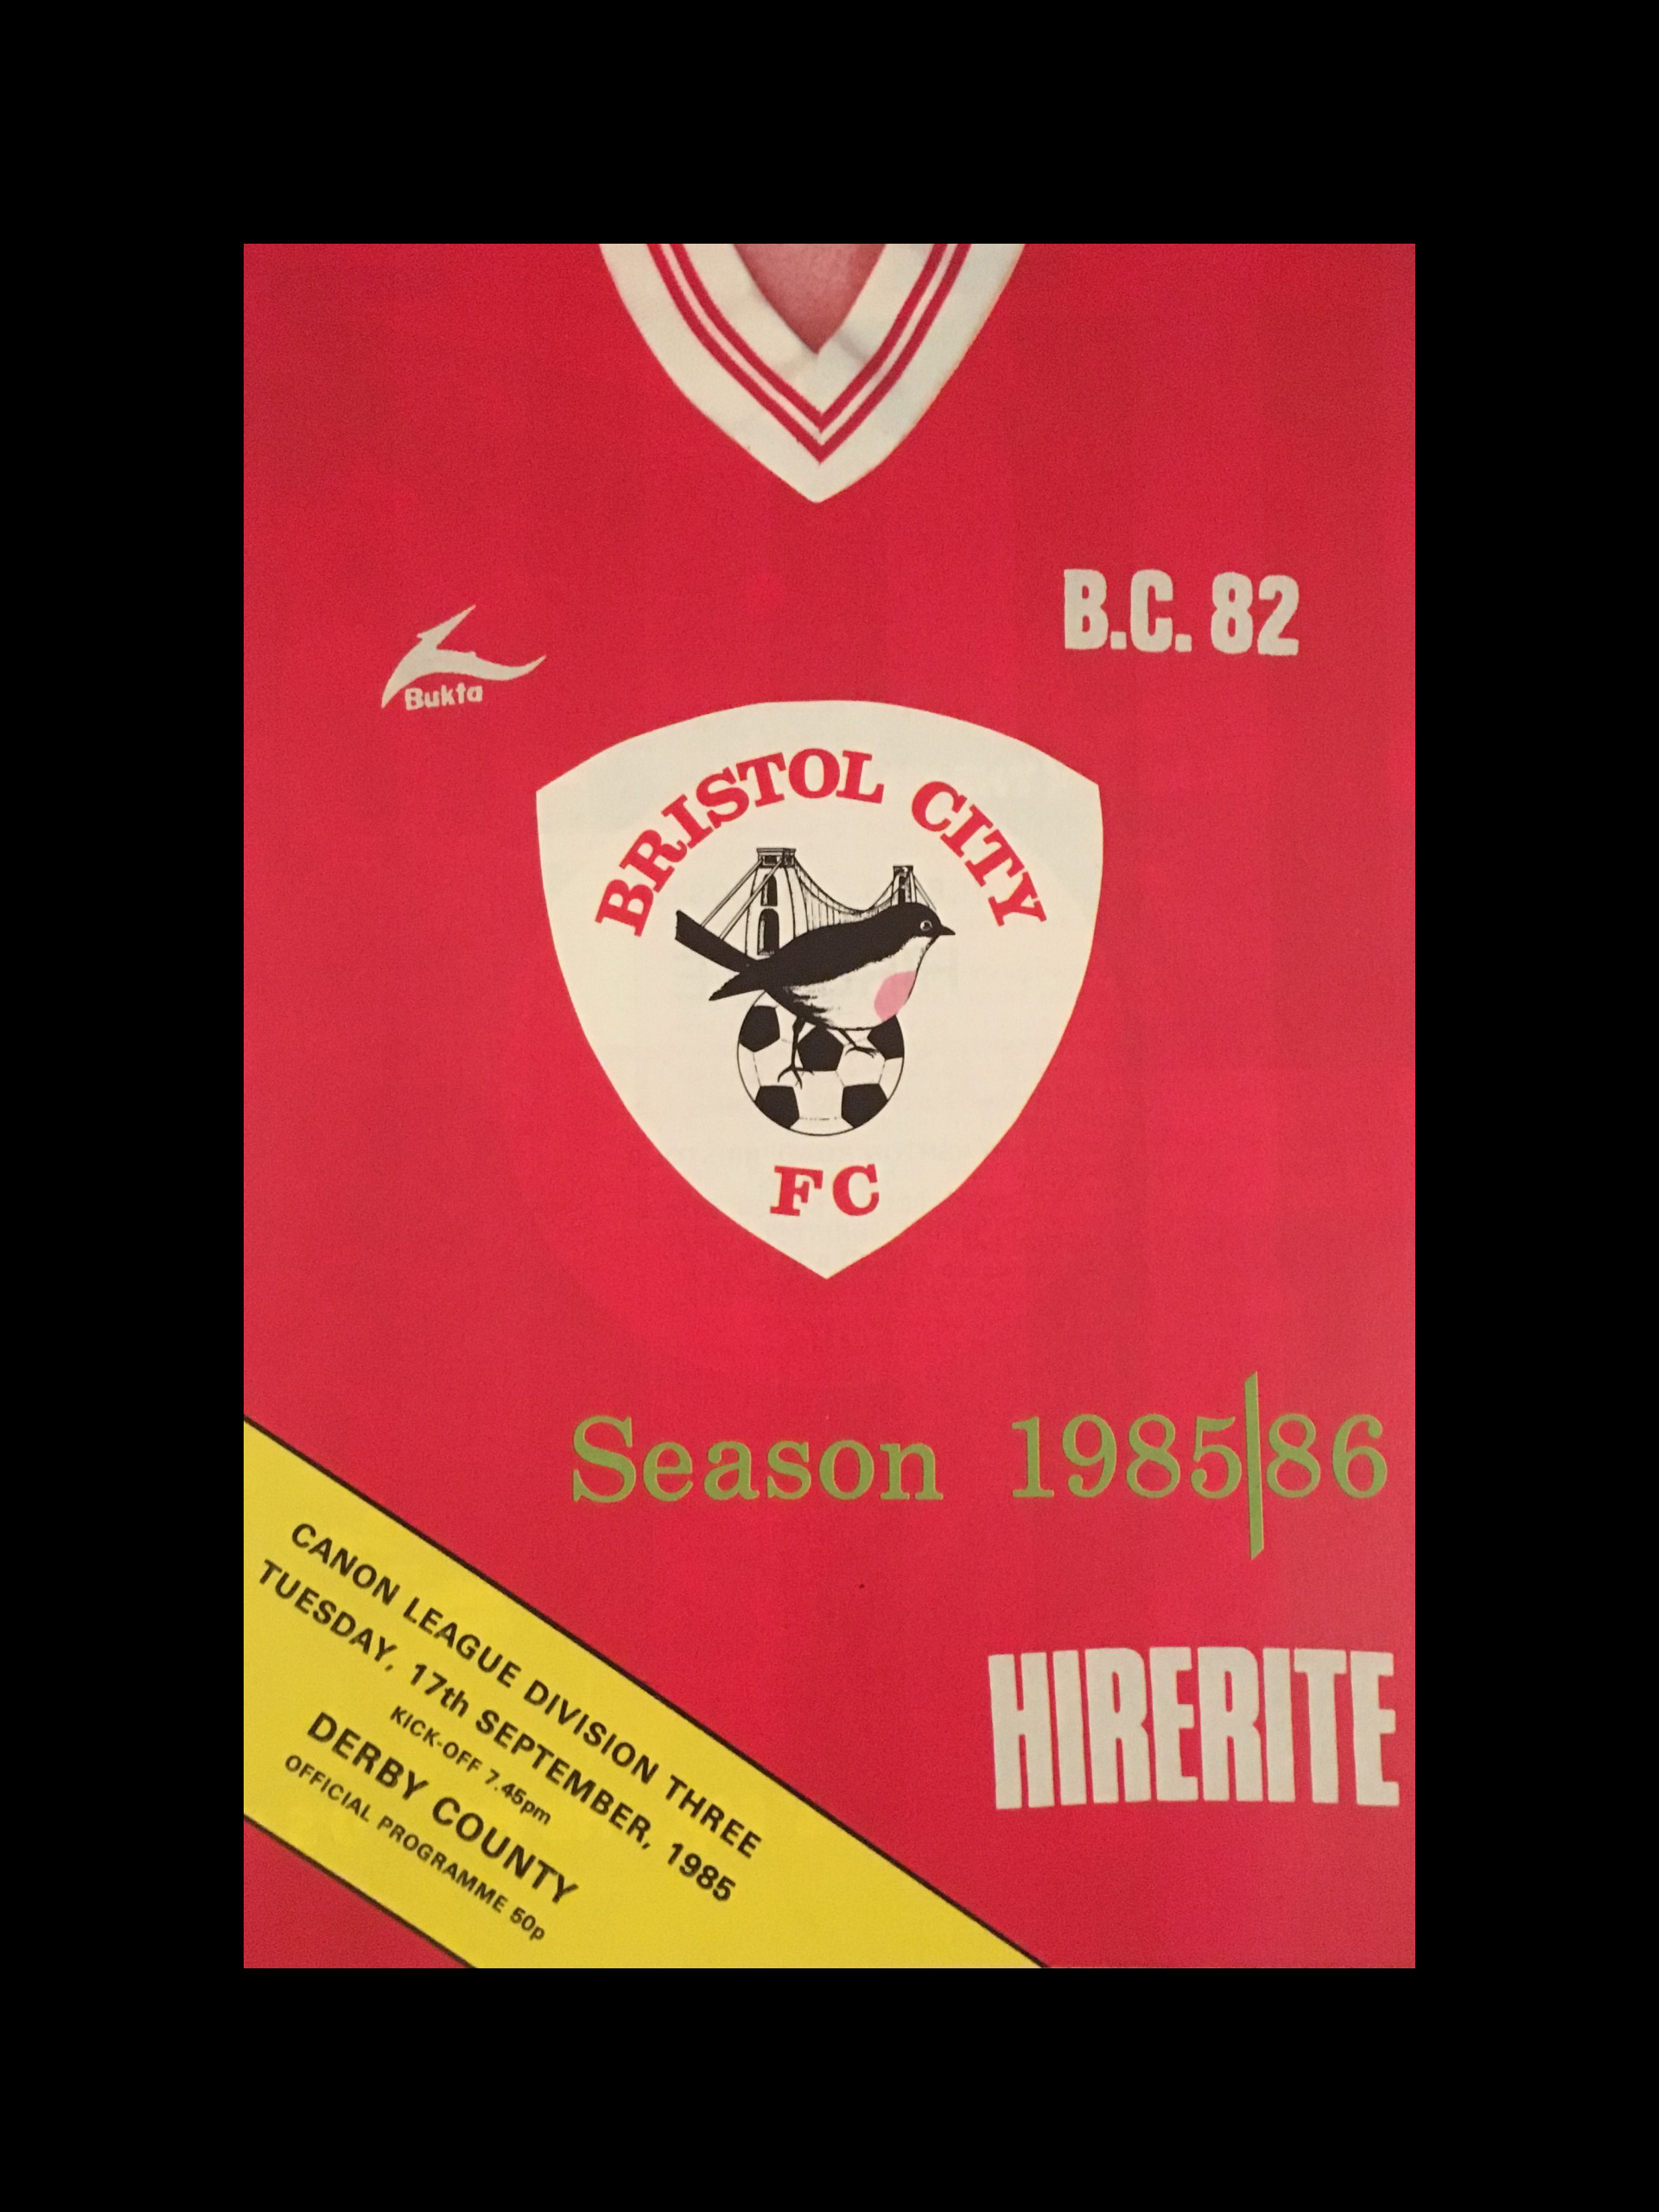 Bristol City v Derby County 17-09-85 Programme